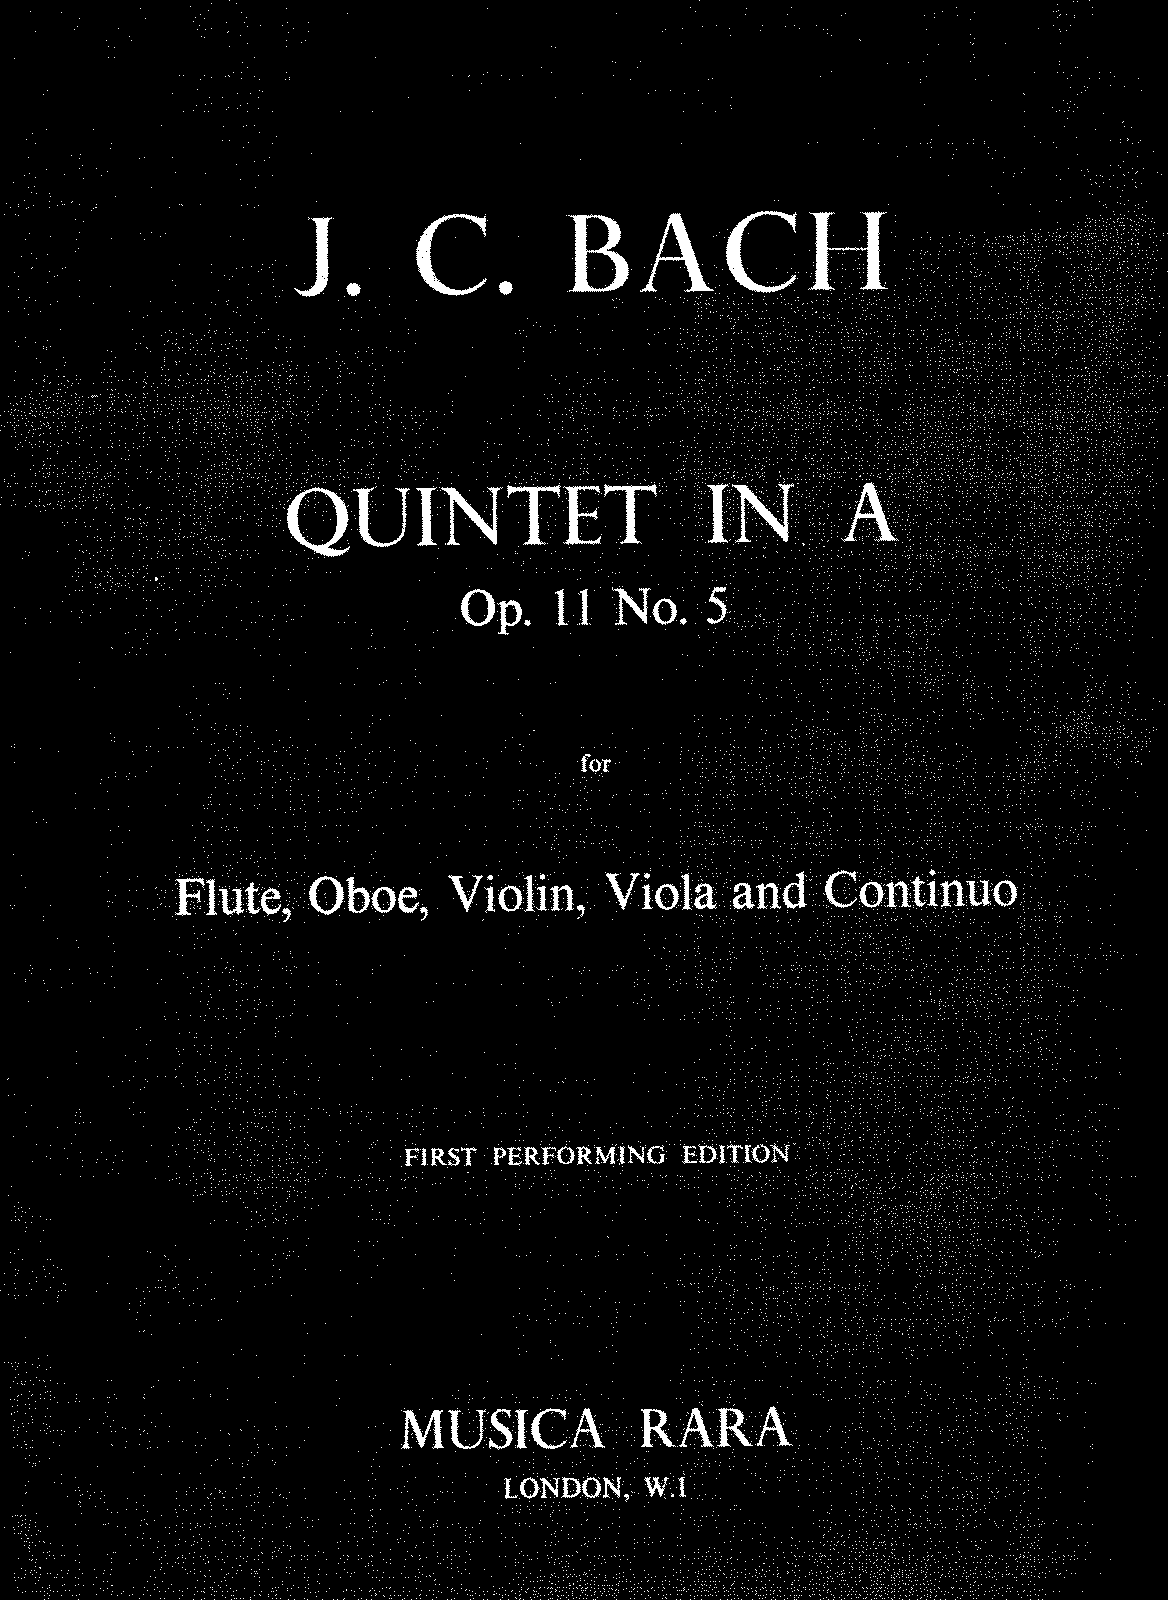 PMLP47934-JC Bach Quintet in A op.11 no.5.pdf